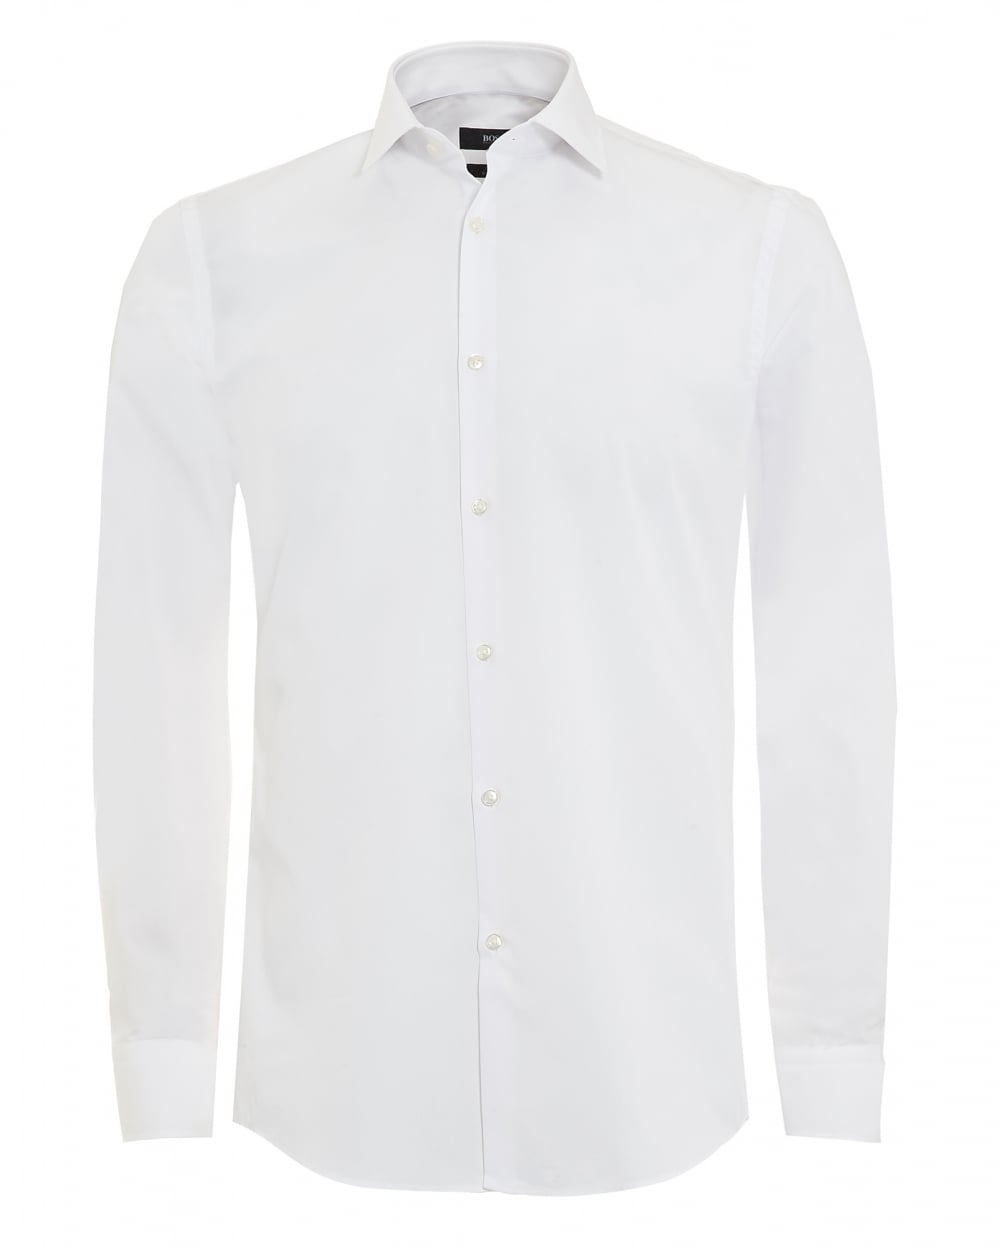 Hugo boss classic mens jenno shirt white plain formal slim for Mens formal white shirts